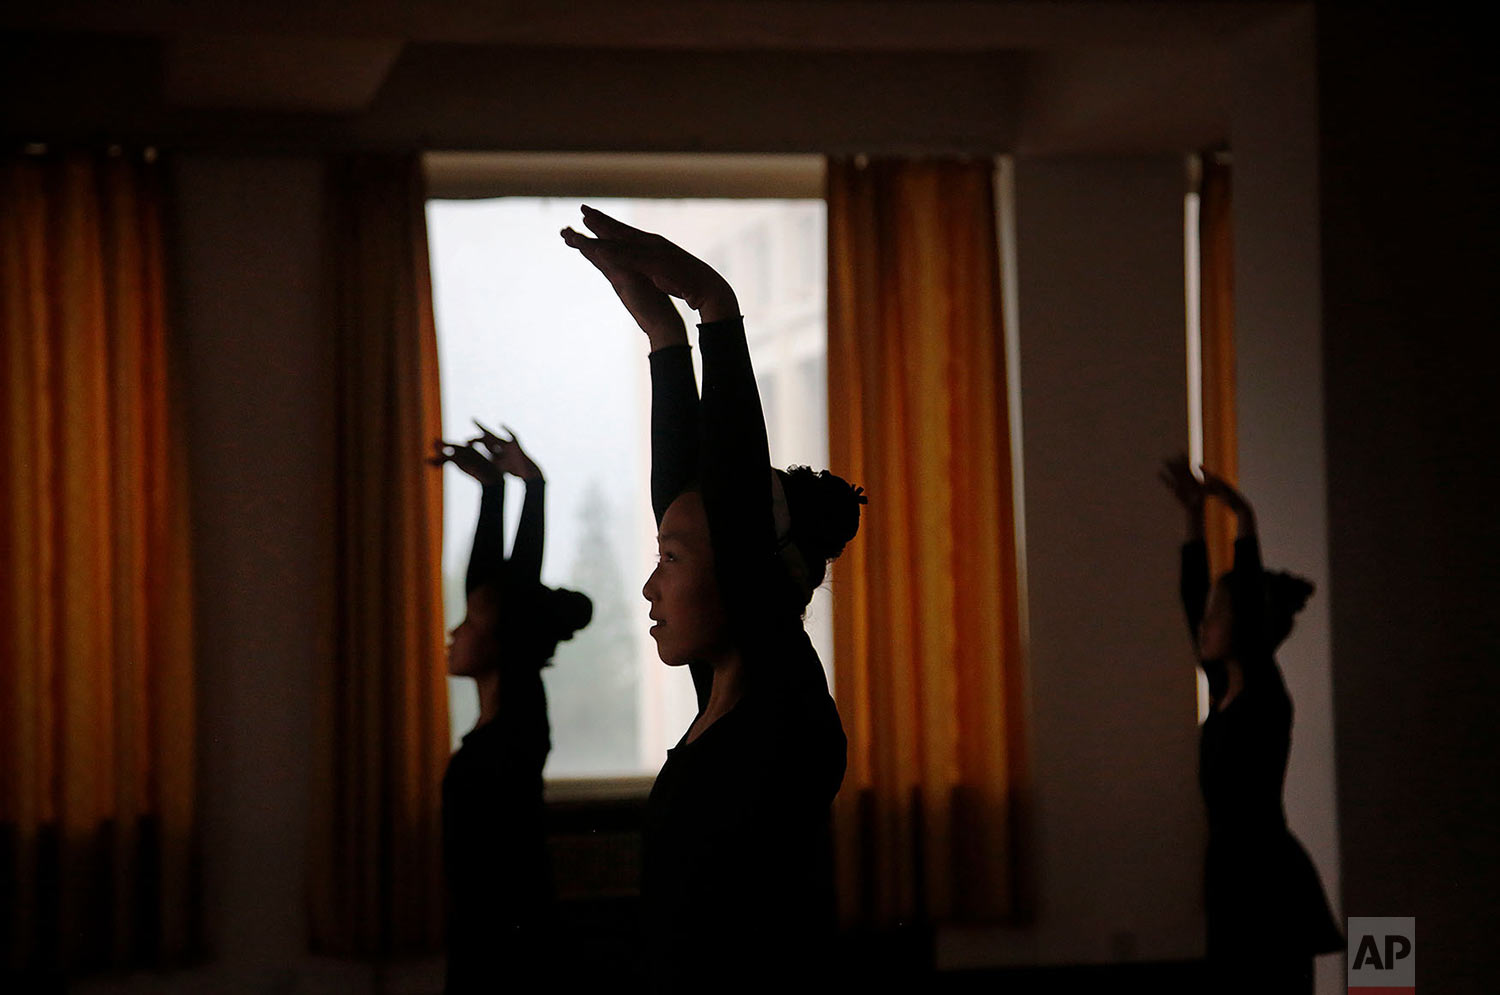 Girls are silhouetted during a dance class at the Mangyongdae Children's Palace in Pyongyang, North Korea, on May 7, 2015. The Children's Palace is a place where talented school children go for extracurricular classes, and is one of the places tourists visit during their stay in Pyongyang. (AP Photo/Wong Maye-E)